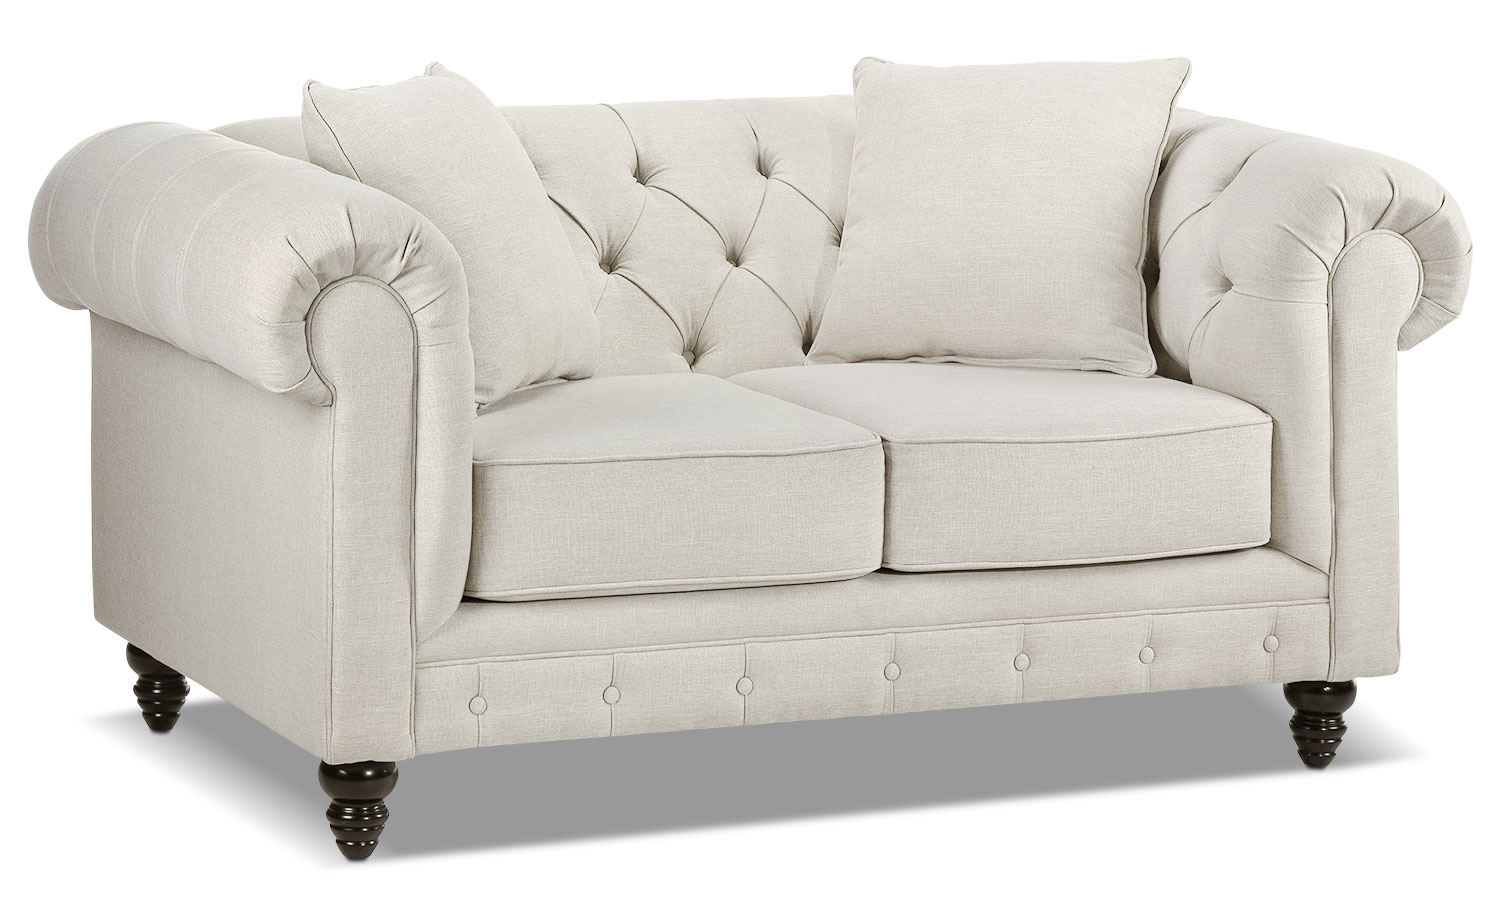 Living Room Furniture - Nubia Loveseat - Pearl